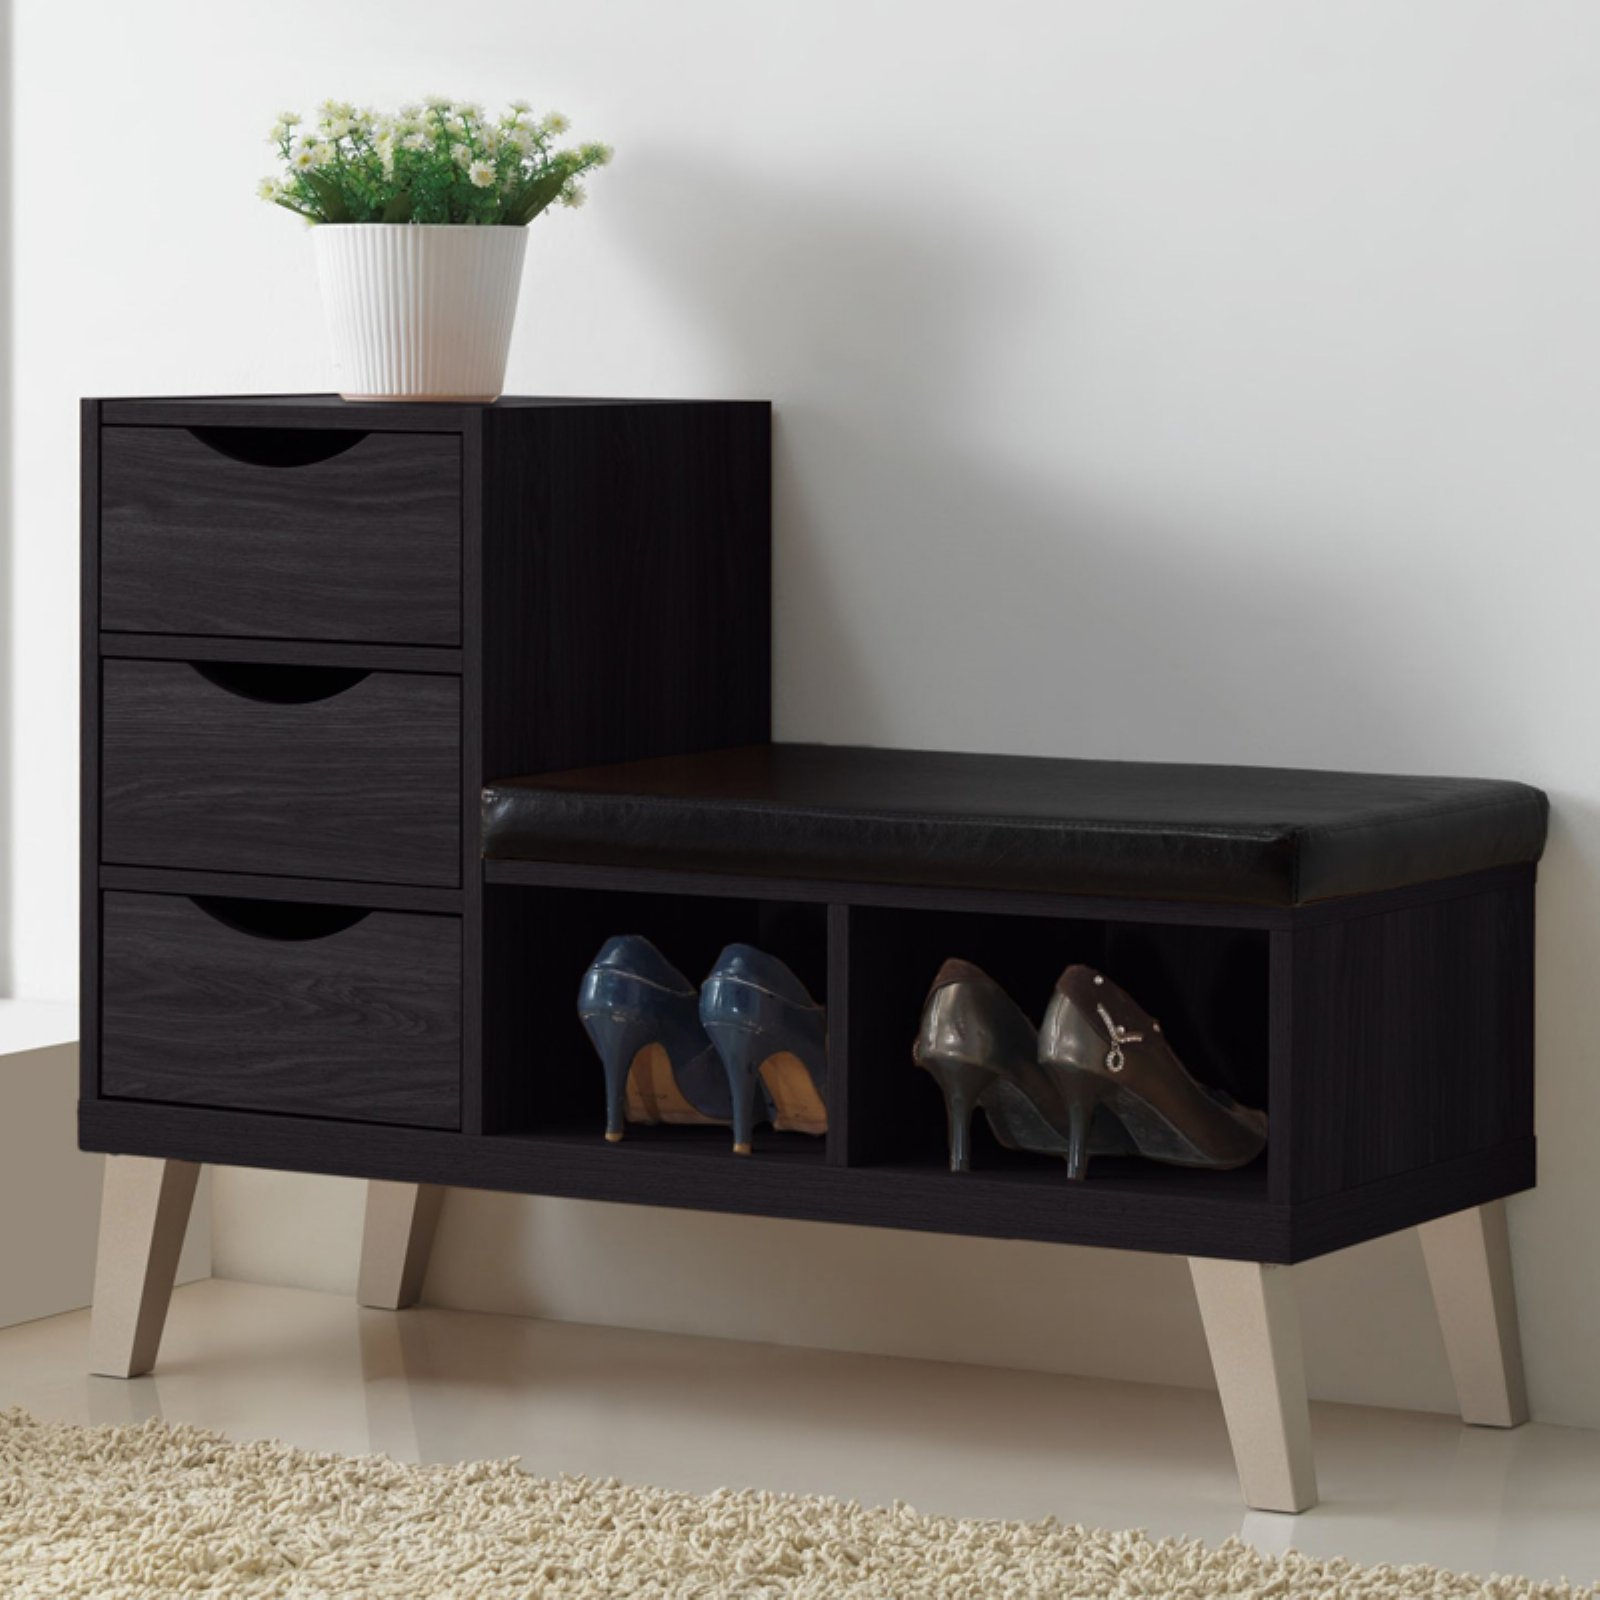 Baxton Studio Arielle Dark Brown Wood 3-Drawer Shoe Storage Bench